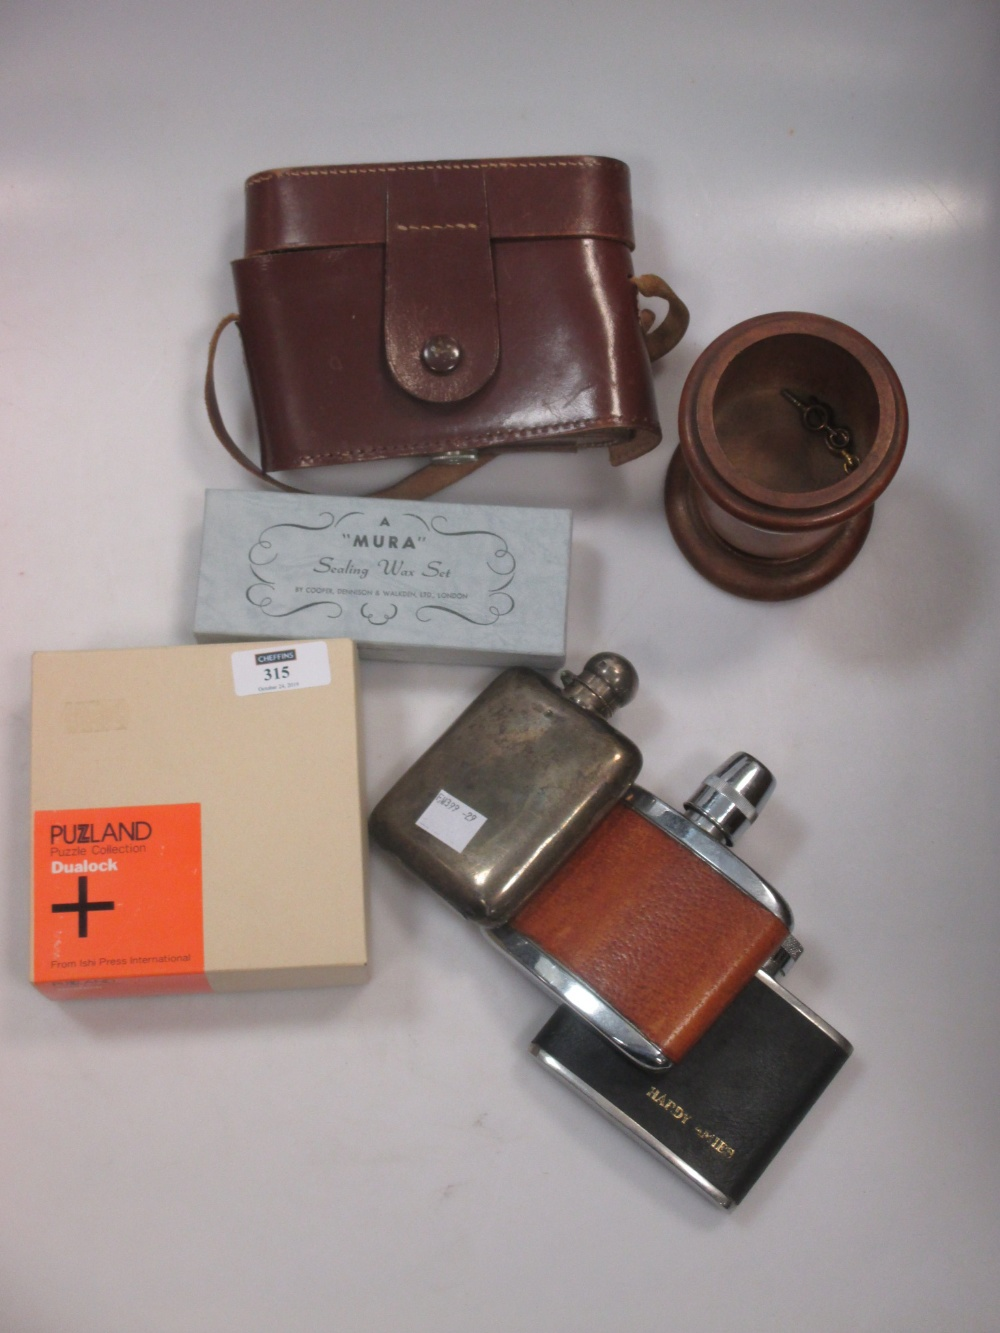 Lot 315 - A Silver hip flask (worn) 3.15ozt, 2 other flasks, camera and treen pot etc